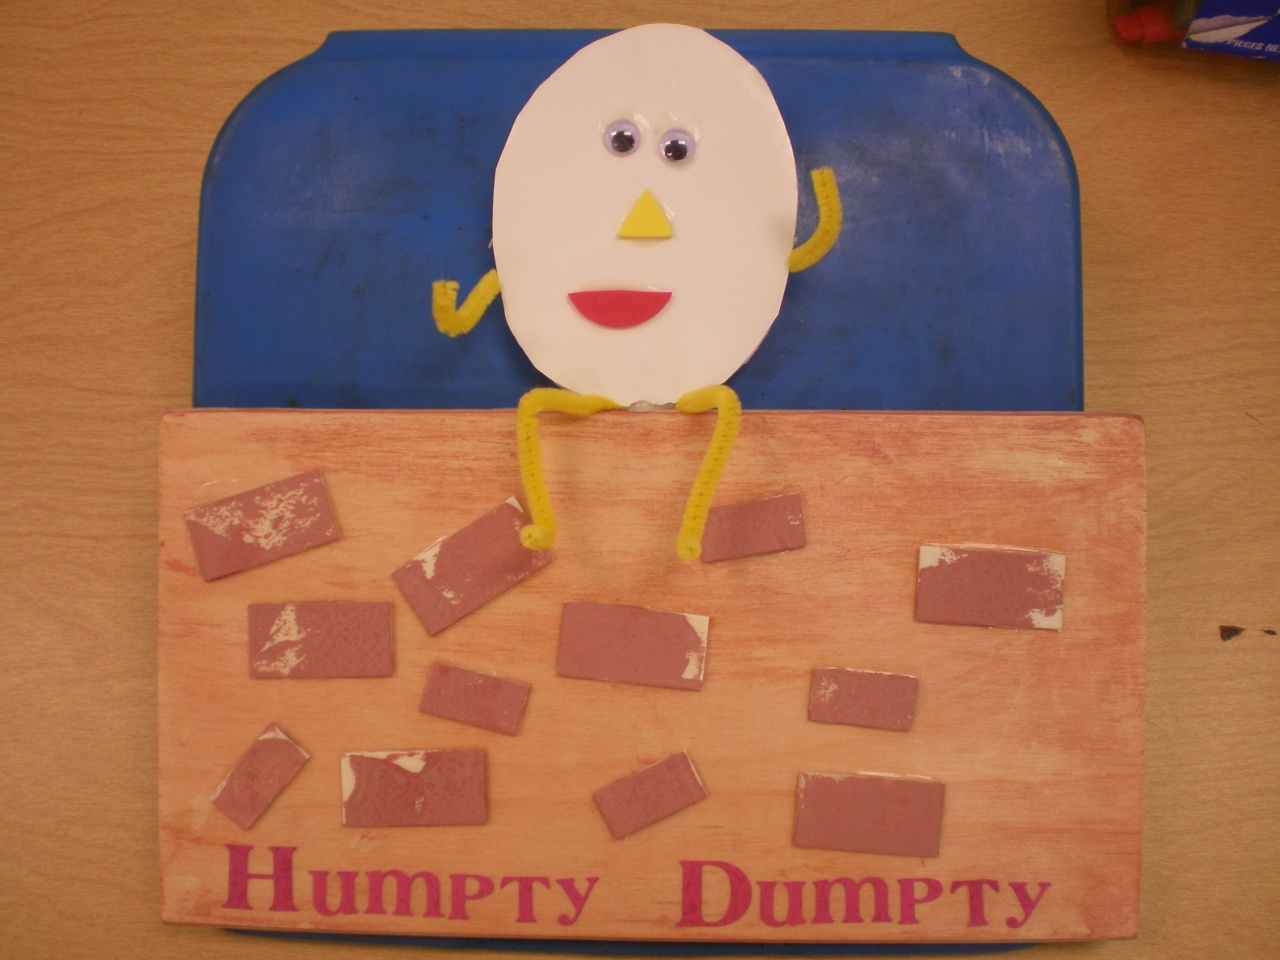 Humpty Dumpty: He was made out of a rectangular piece of wood which the students painted and added bricks to. They also added eyes, a nose and a mouth to the egg placed on top of the wall. Pipe cleaners were used for the arms and the legs.